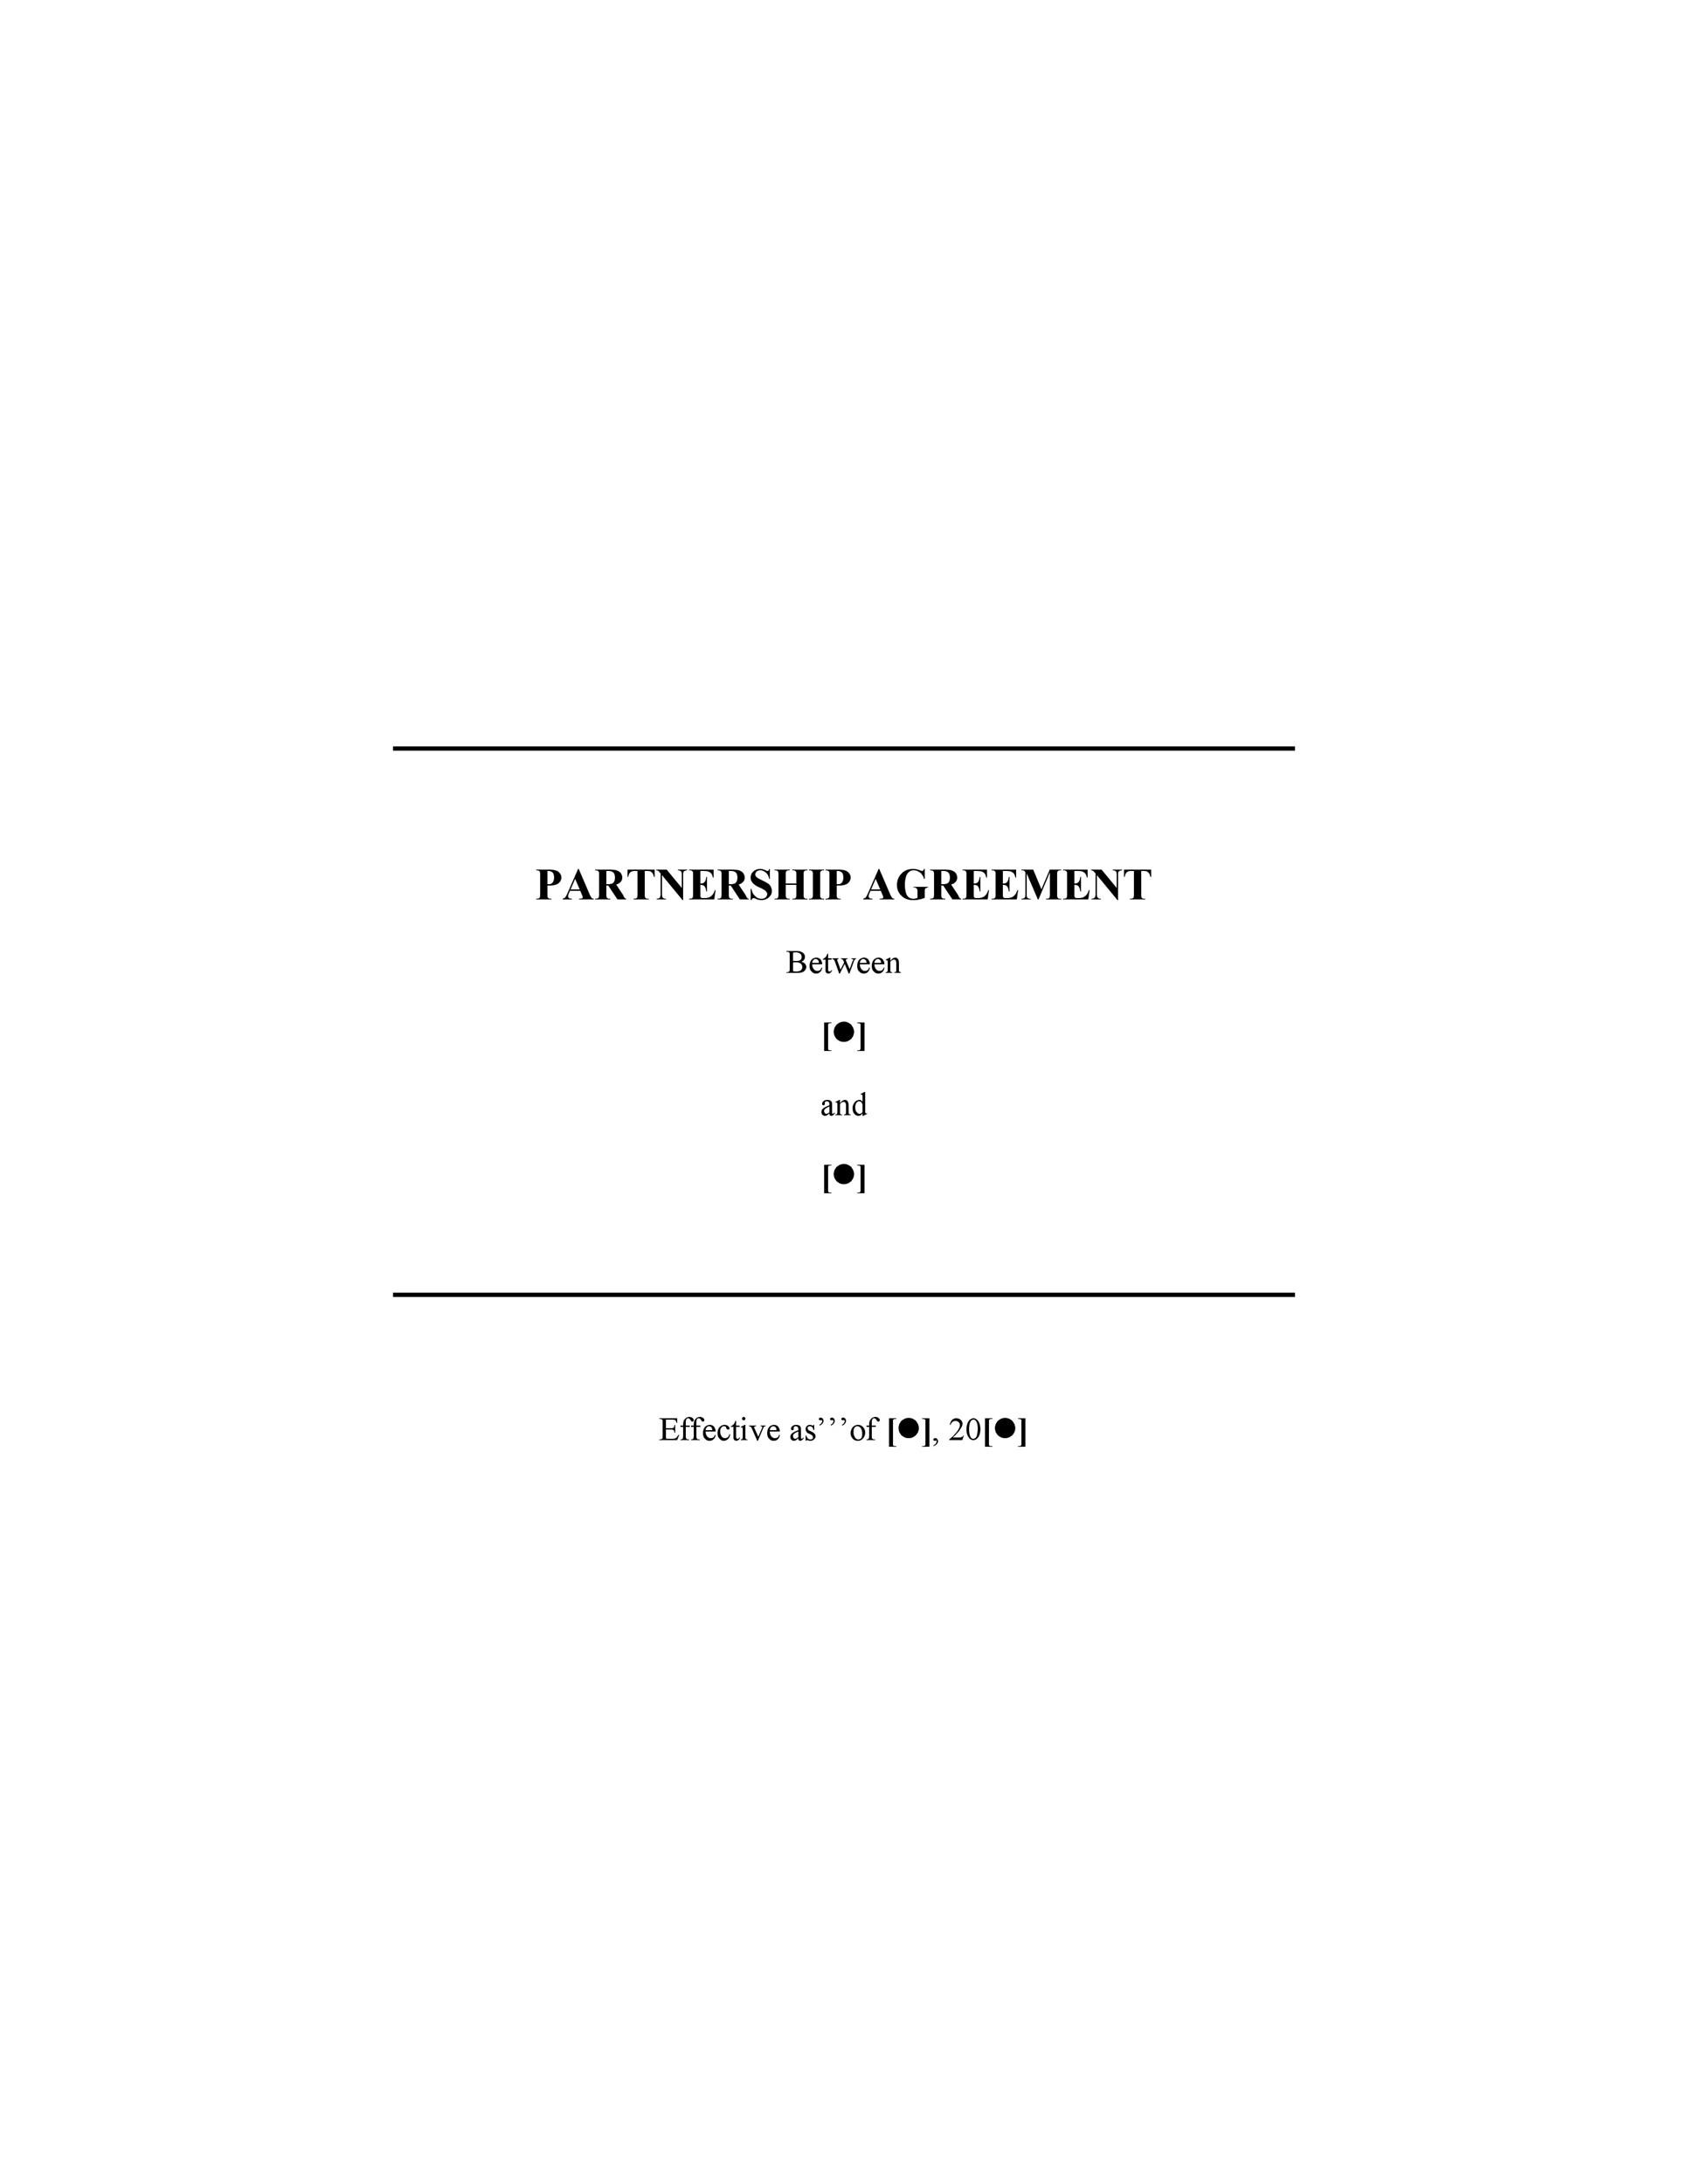 Free business agreement template vatozozdevelopment 40 free partnership agreement templates business general flashek Image collections